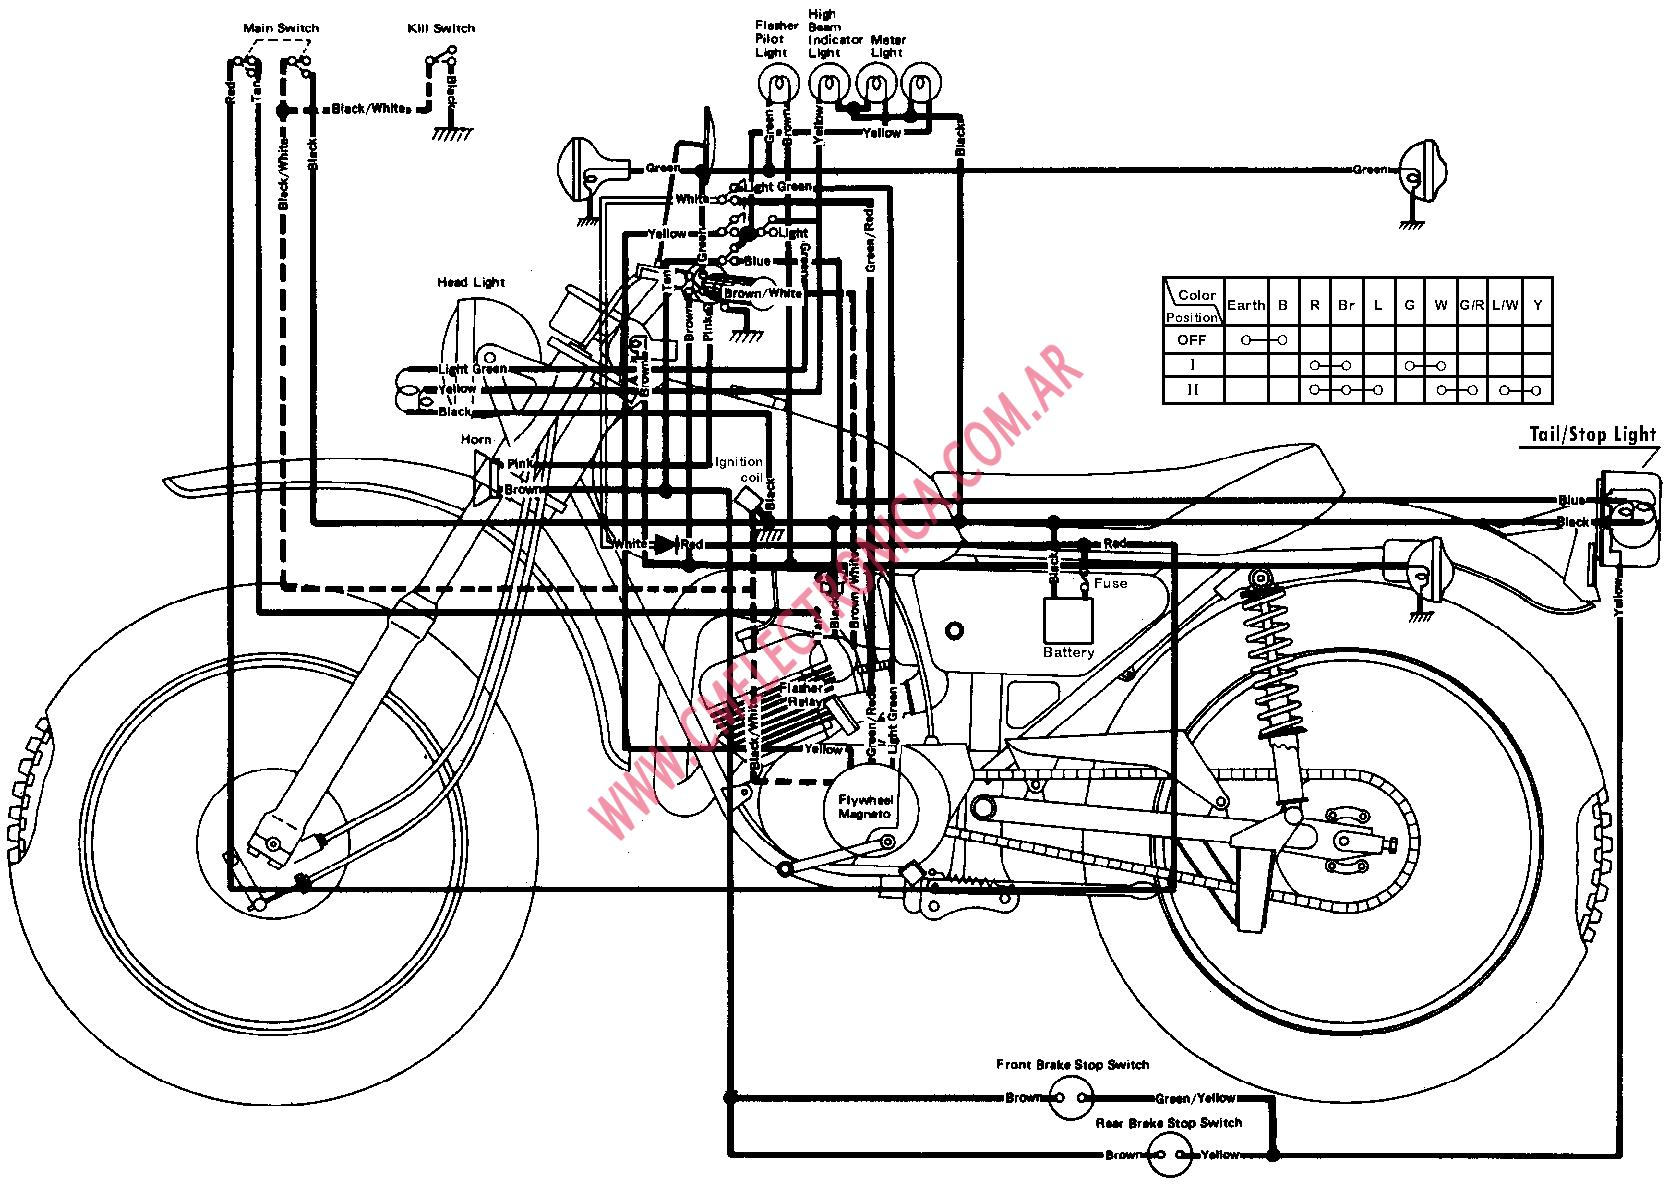 wiring diagram for 1974 yamaha dt 360 1974 yamaha enduro